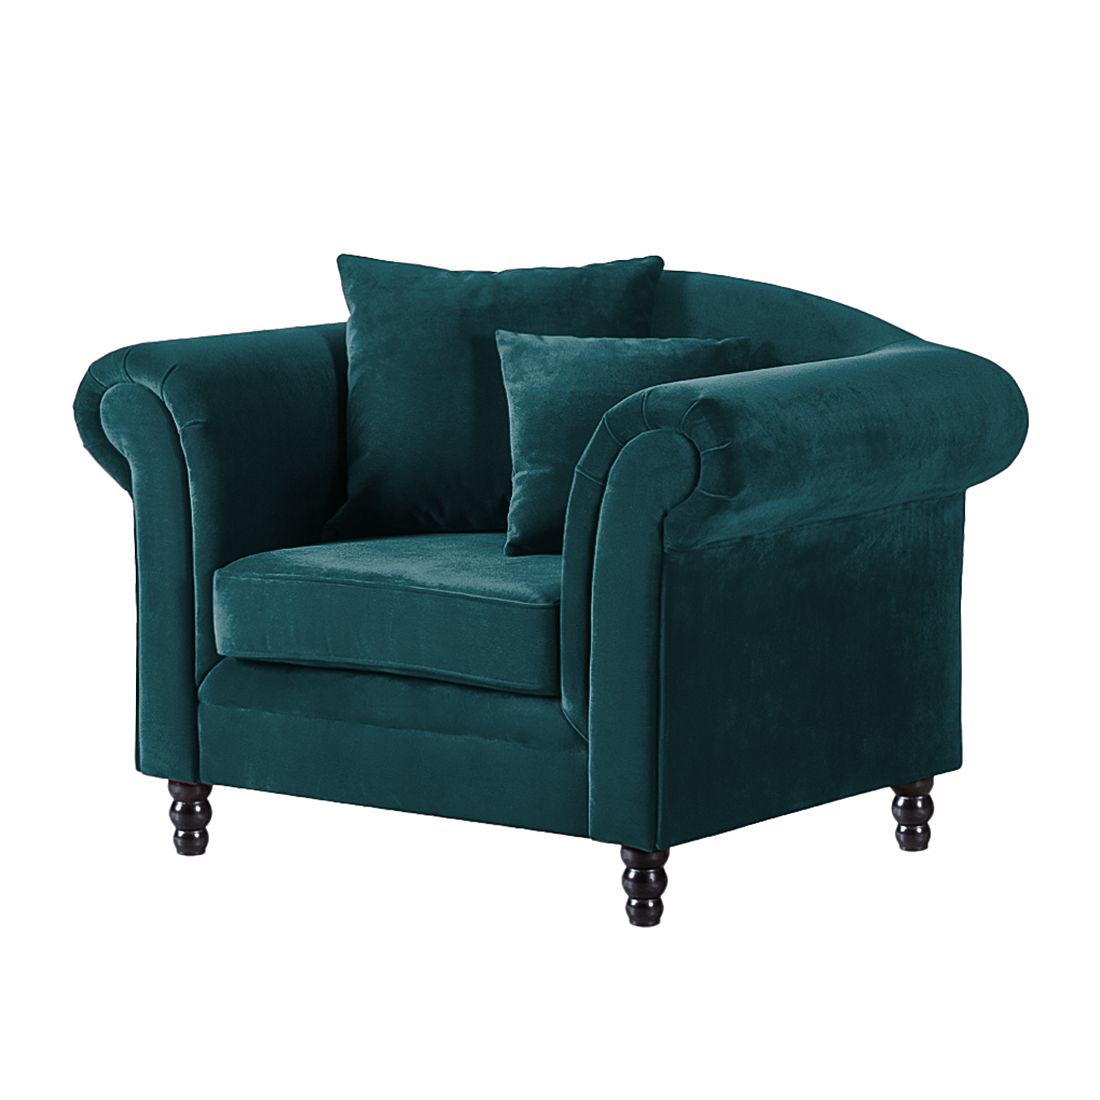 Home 24 - Fauteuil york - velours pétrole, jack and alice